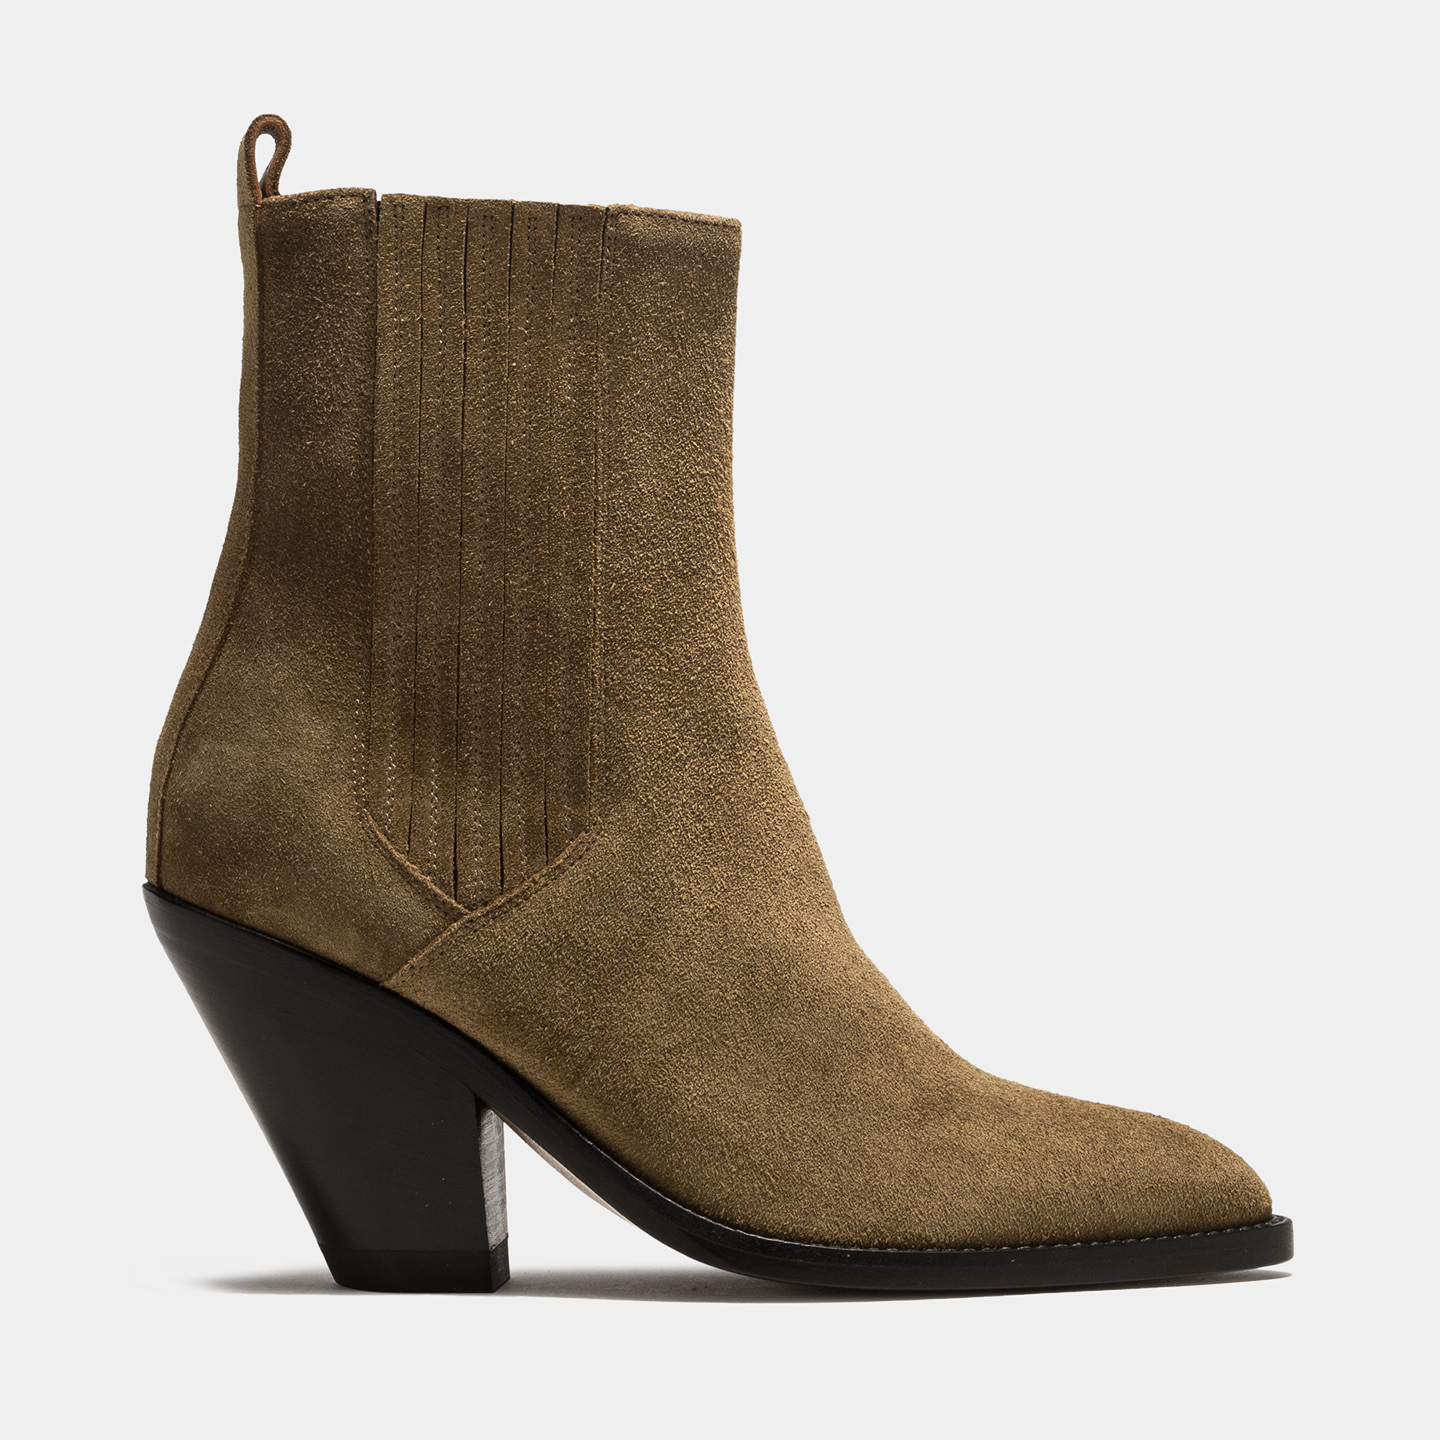 BUTTERO: JANE BOOTS IN PLANTATION GREEN SUEDE